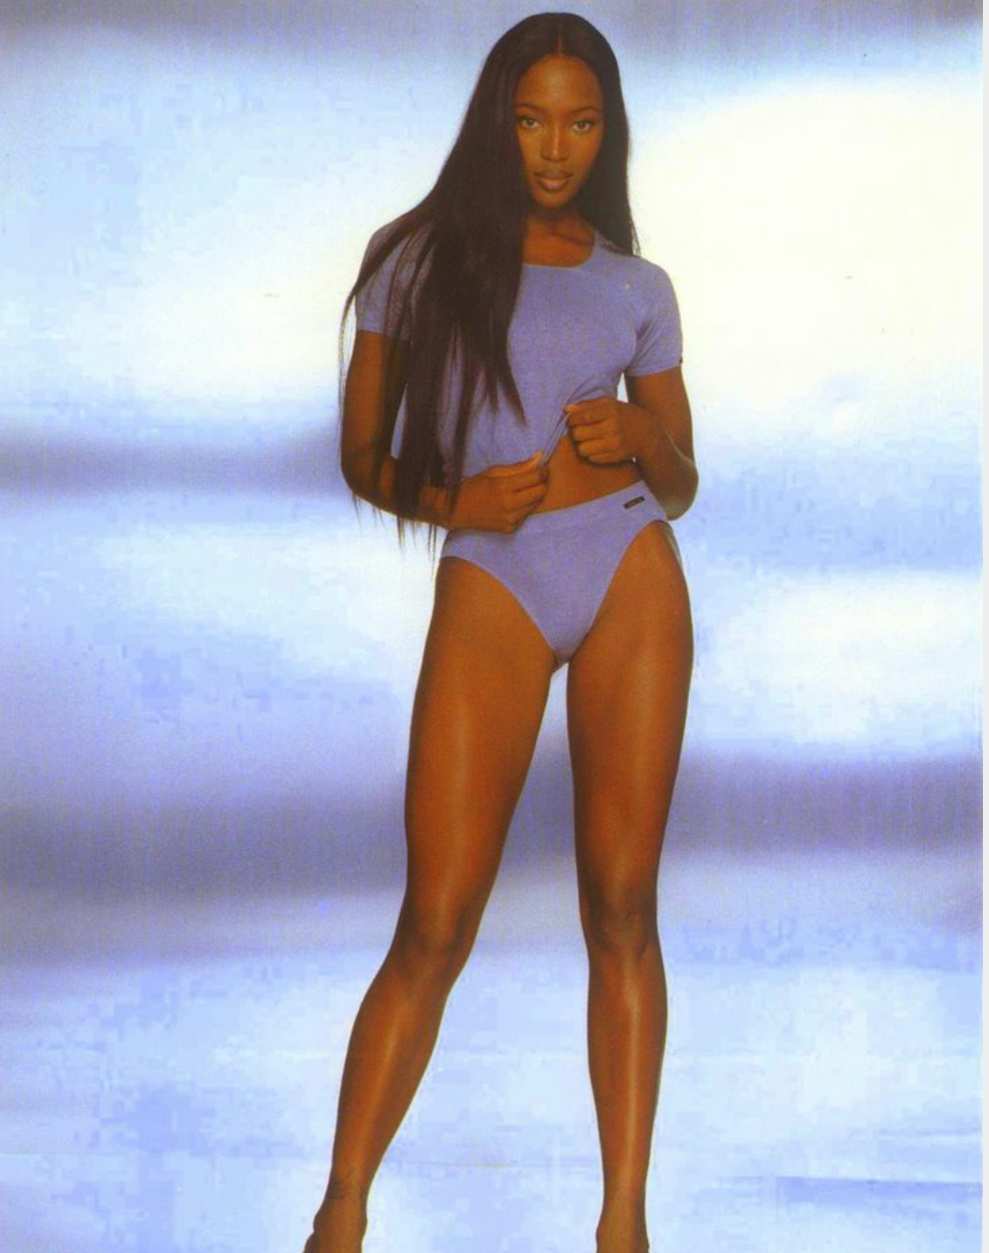 Young Naomi Campbell nudes (93 foto and video), Pussy, Hot, Selfie, butt 2006